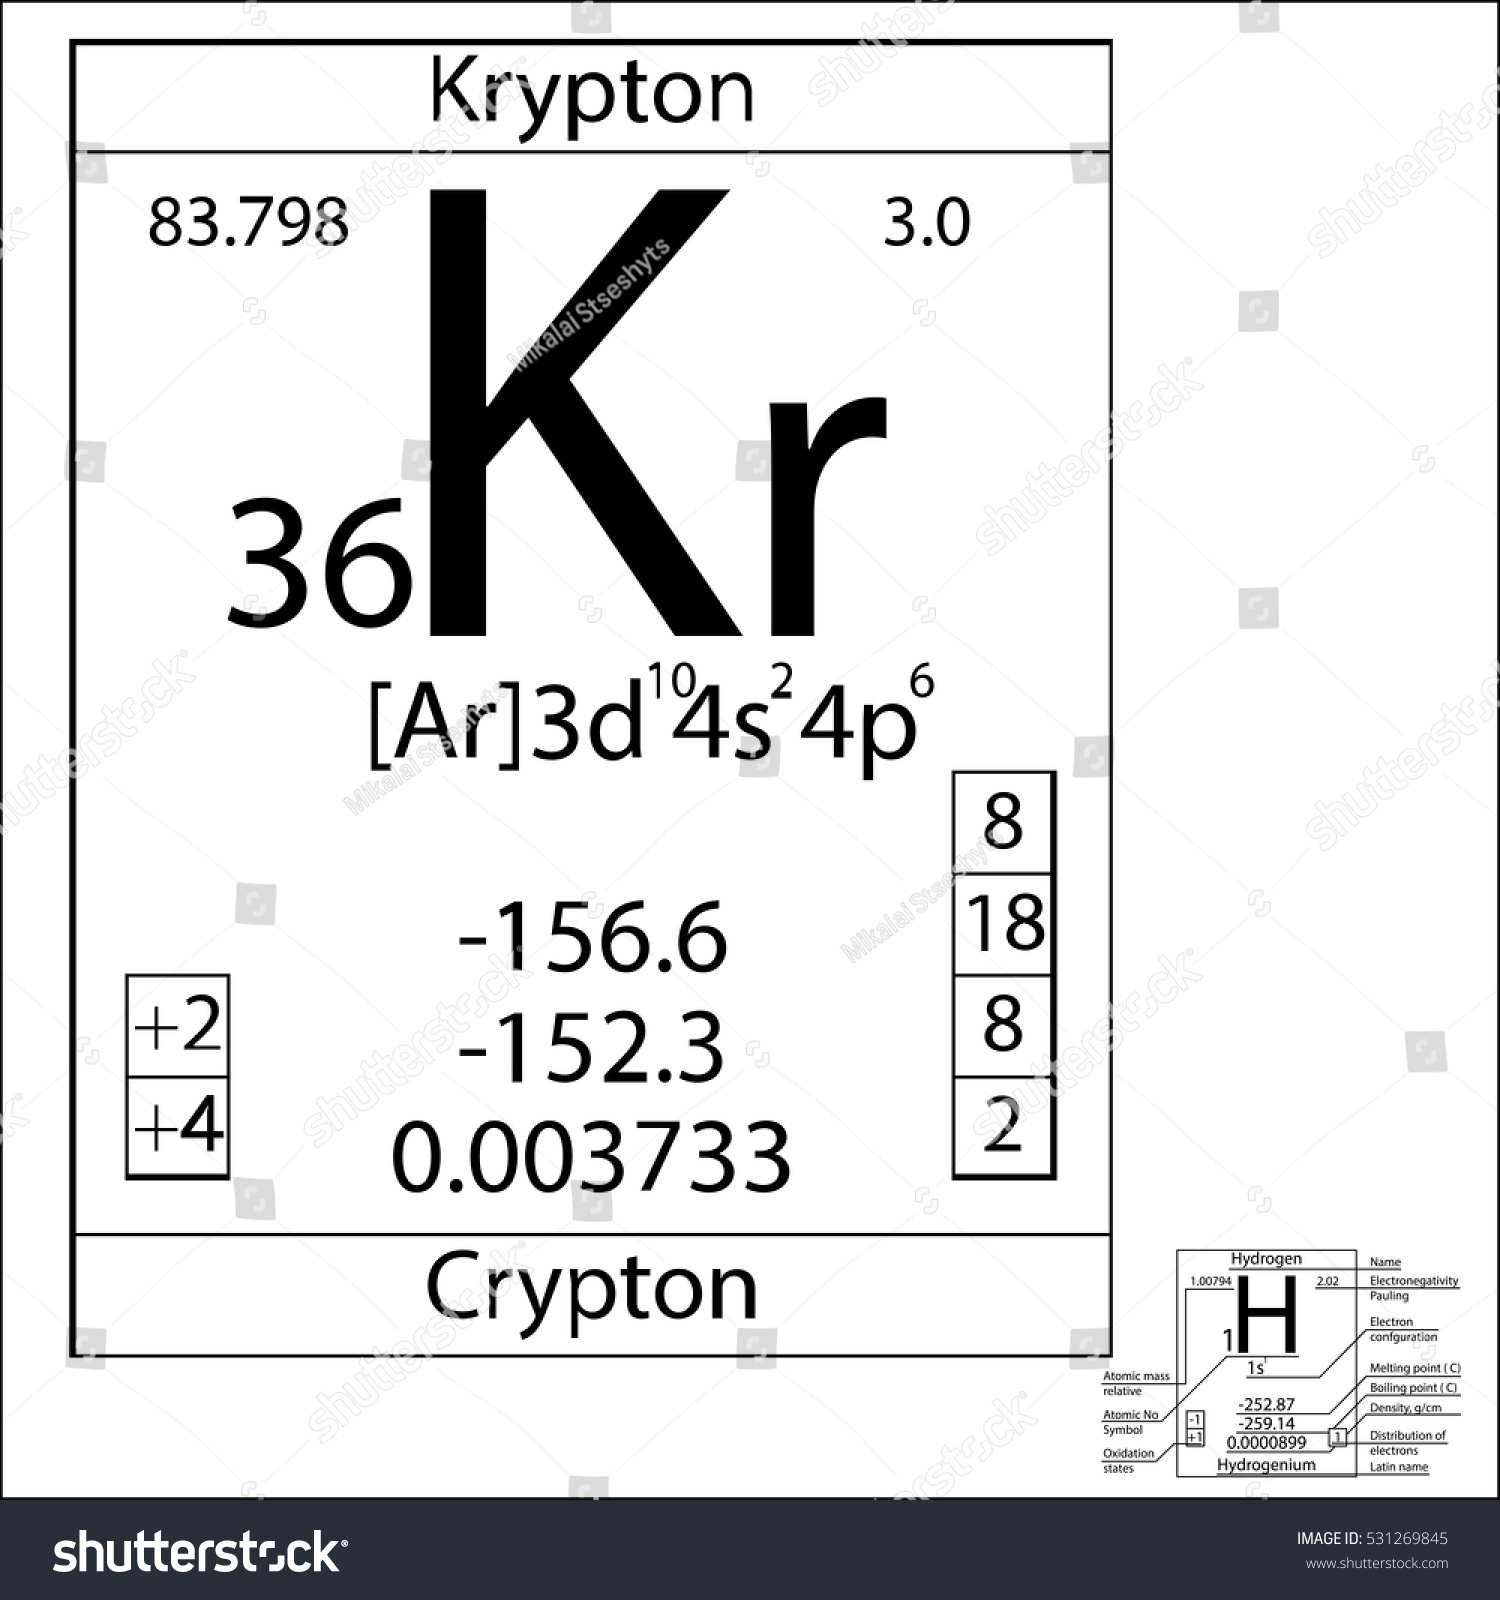 Periodic table of elements krypton choice image periodic table periodic table of elements krypton gallery periodic table images periodic table of elements krypton choice image gamestrikefo Choice Image